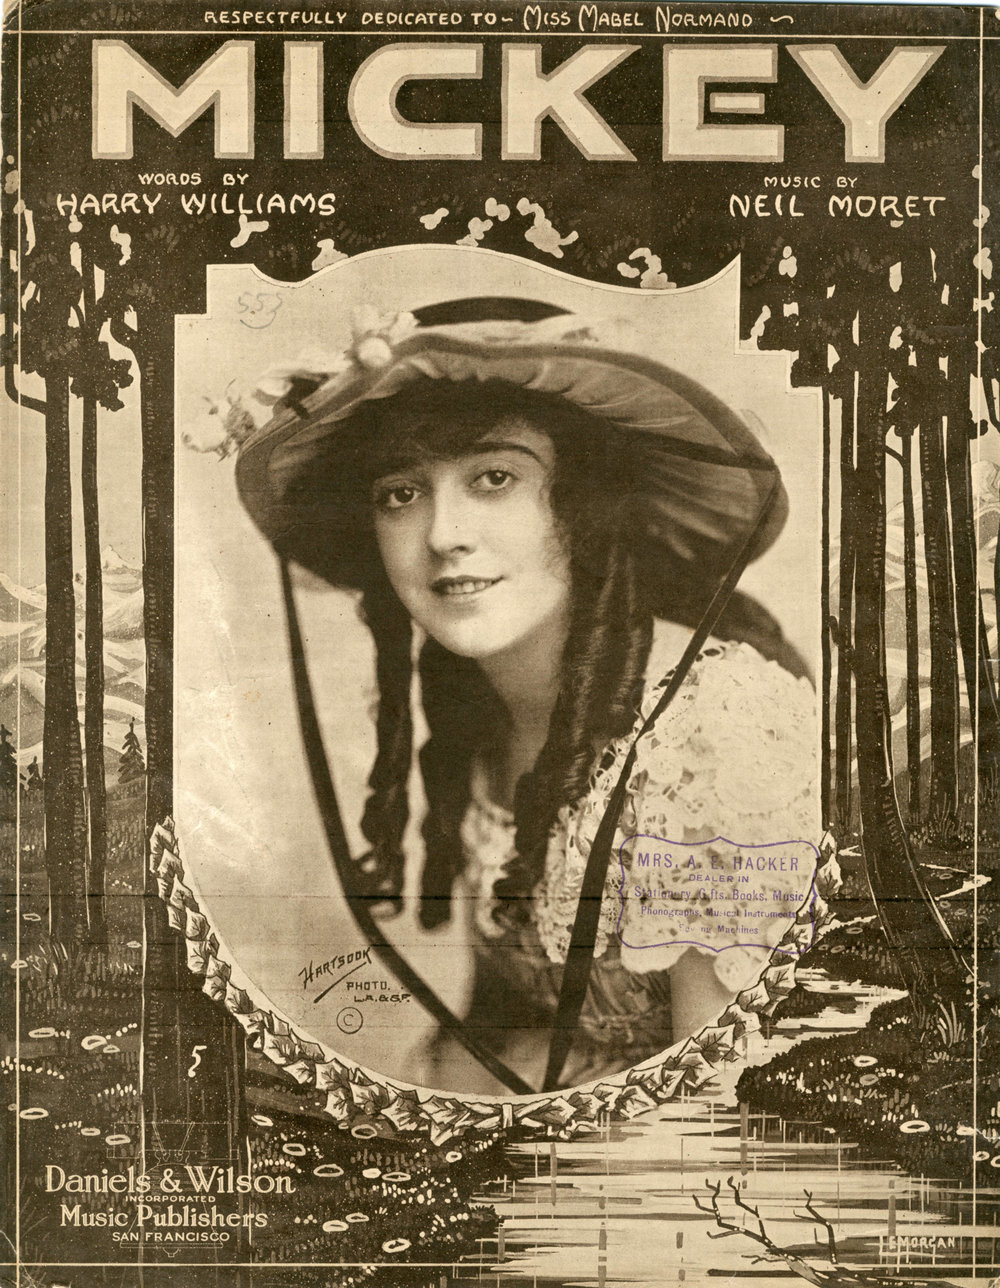 Mickey.  Dir. F. Richard Jones & James Young.  Featuring Mabel Normand.  USA, 1918.